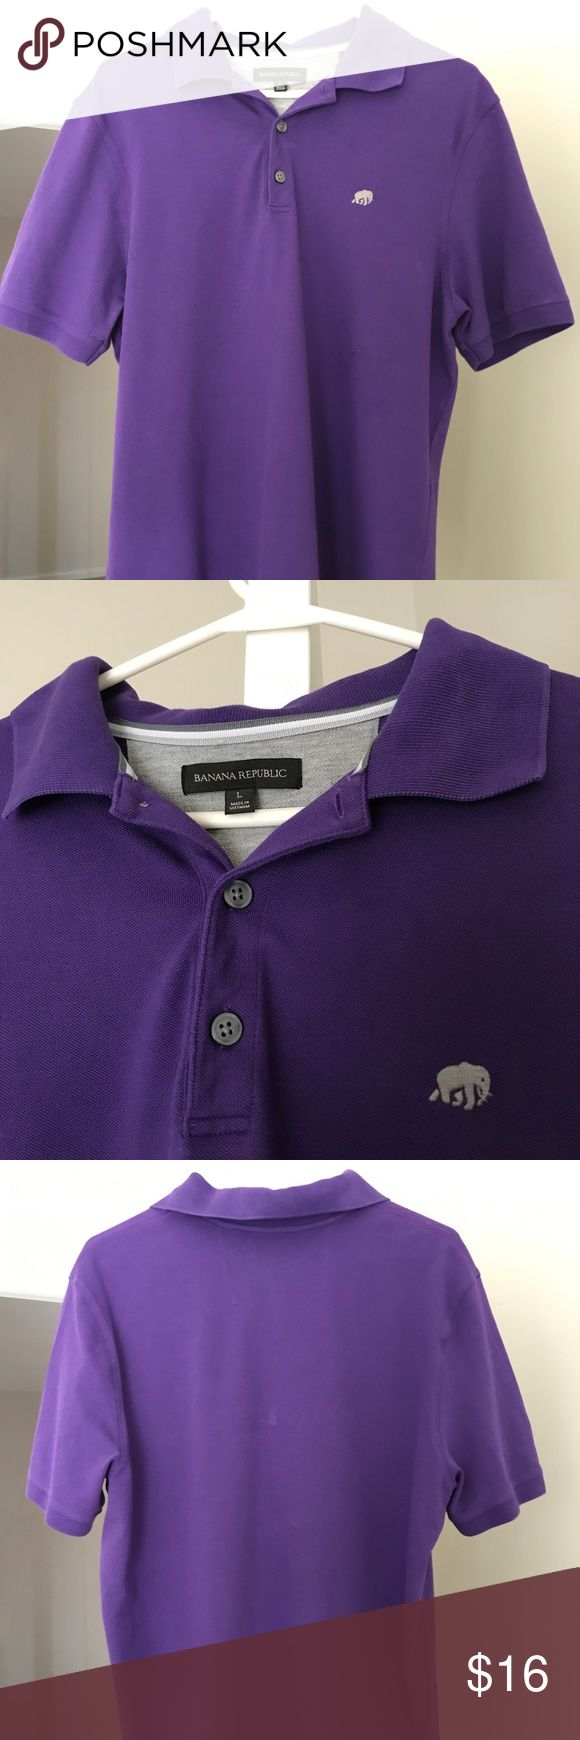 Banana Republic Purple Polo Shirt Short Sleeve Men's Large Banana Republic Purple Short Sleeve Polo Shirt.  Gently worn and hand washed.  Slightly form fitting shirt.  Little mark on the back of the shirt.  Price reflects wear.  Bundle & save with other items from my closet!  Any questions, please ask! Banana Republic Shirts Polos